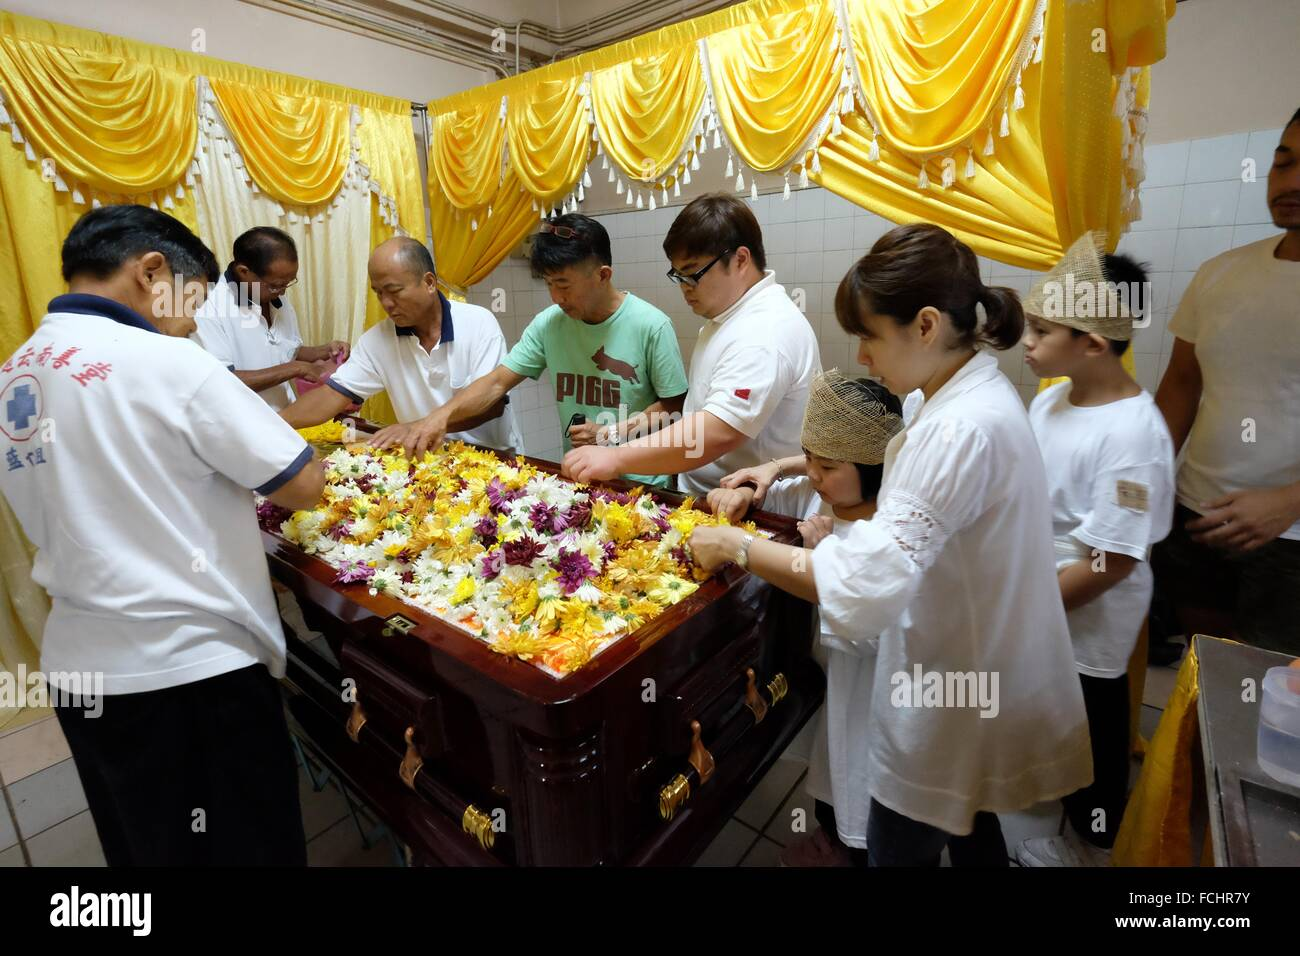 Relatives putting flowers into the coffin sarawakian chinese relatives putting flowers into the coffin sarawakian chinese funeral ceremony malaysia izmirmasajfo